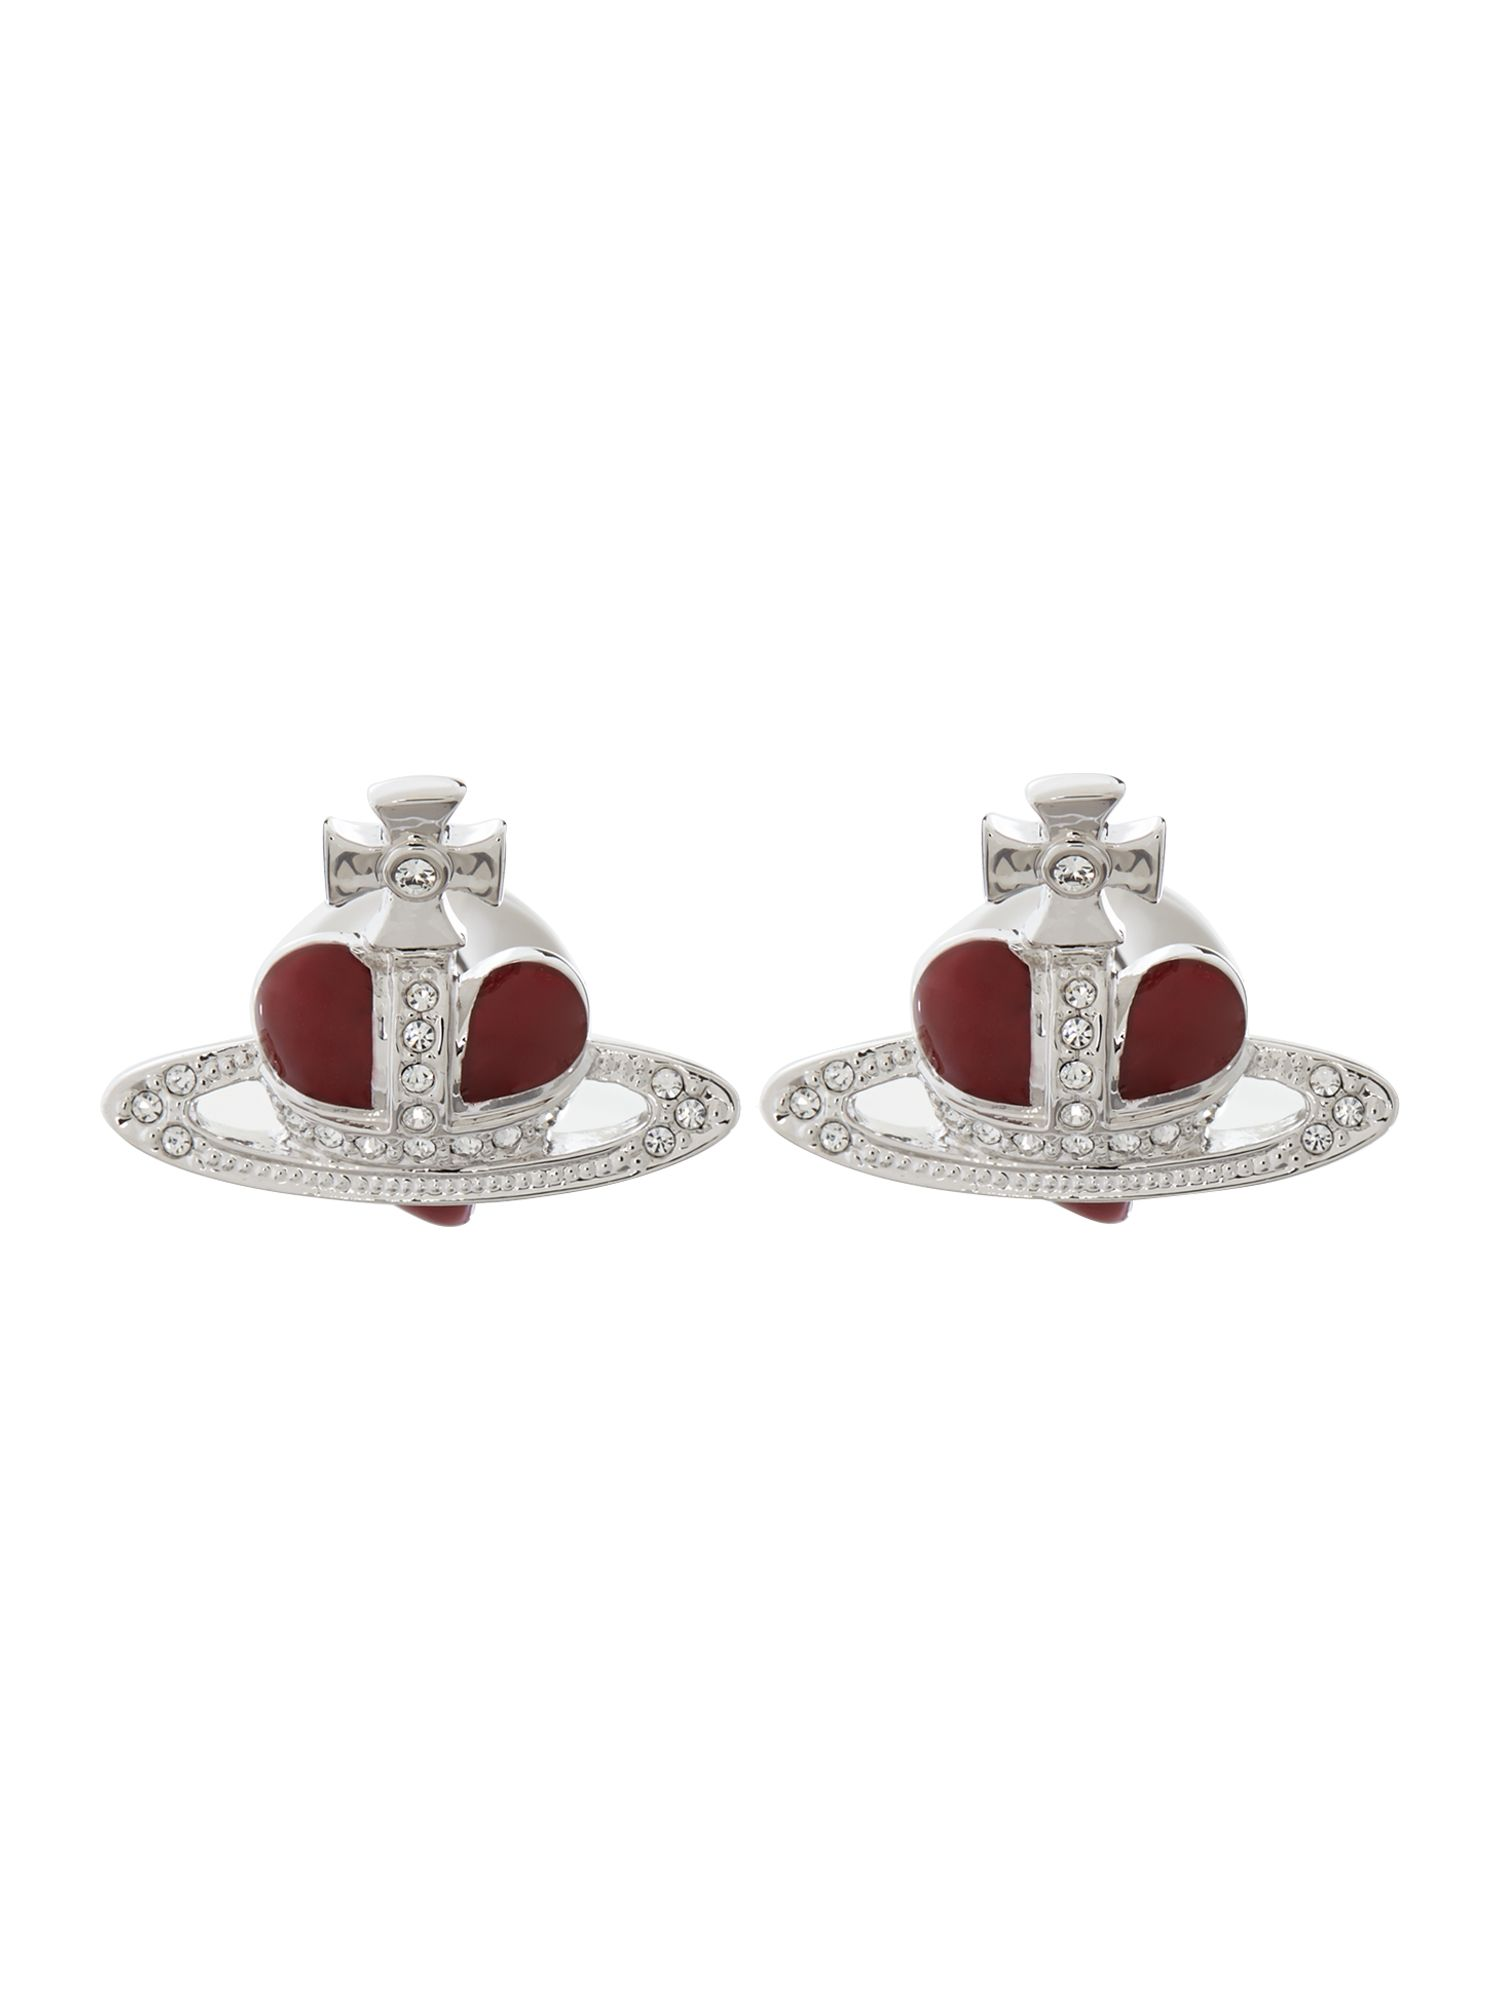 Diamante heart cufflinkd